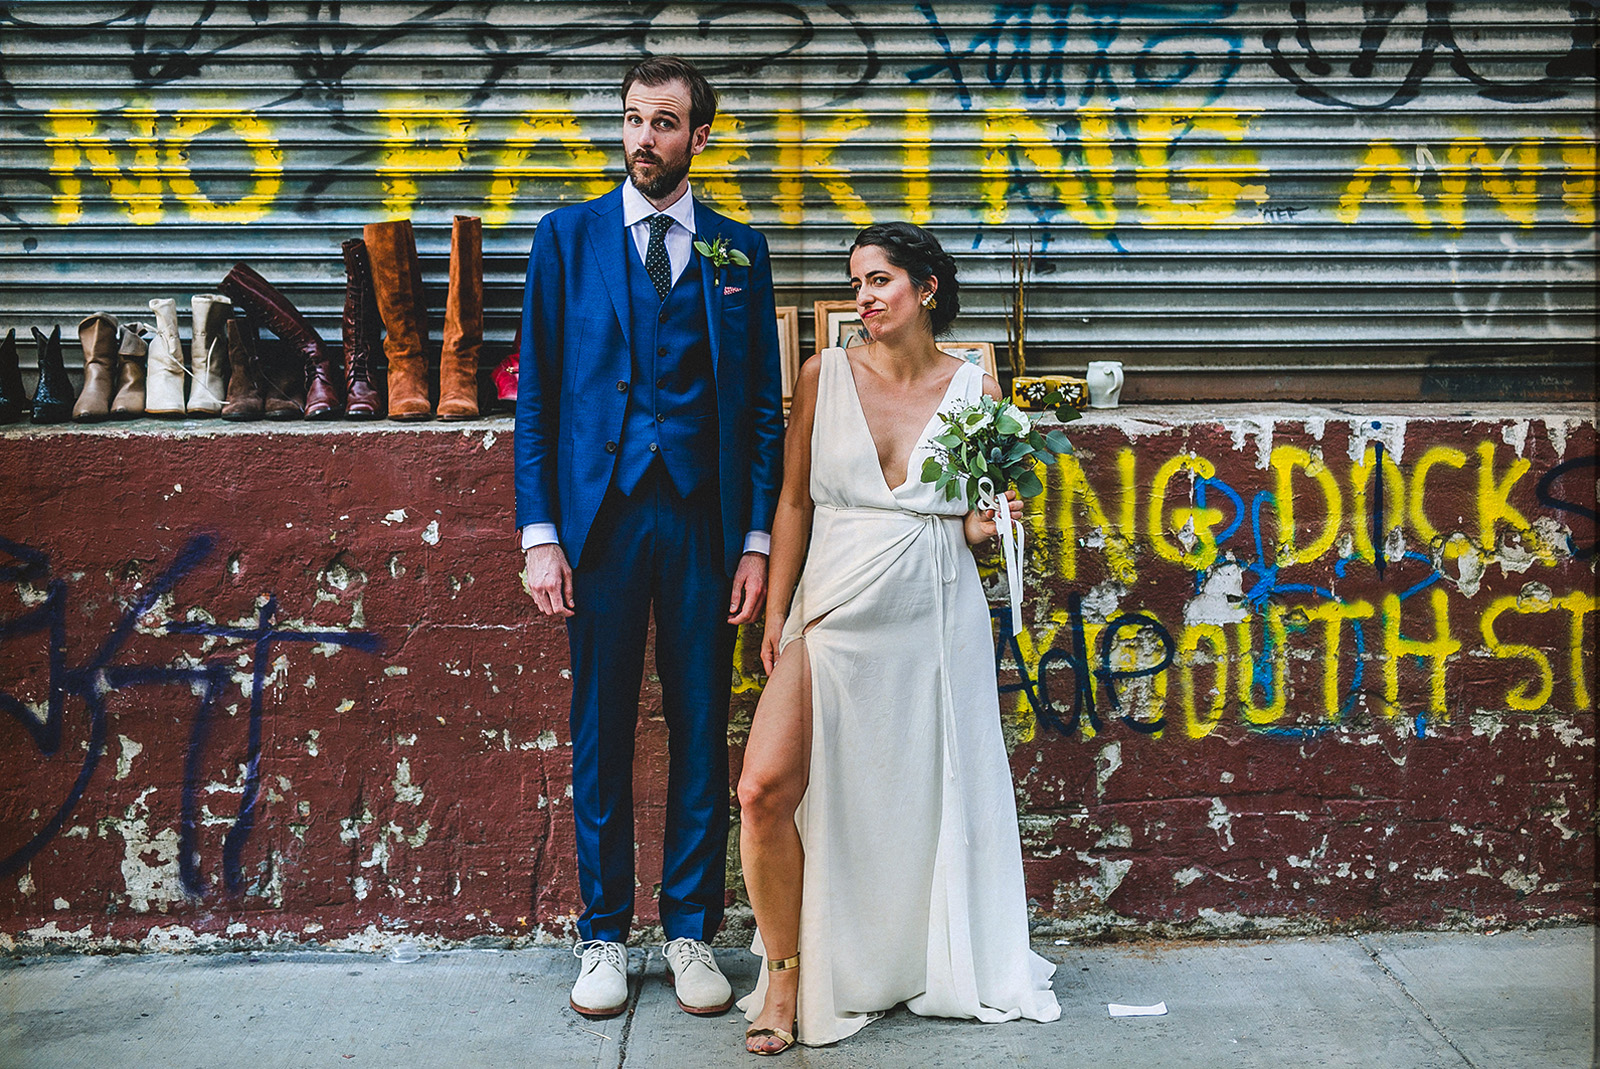 bride and groom photo shoot in the streets of dumbo new york